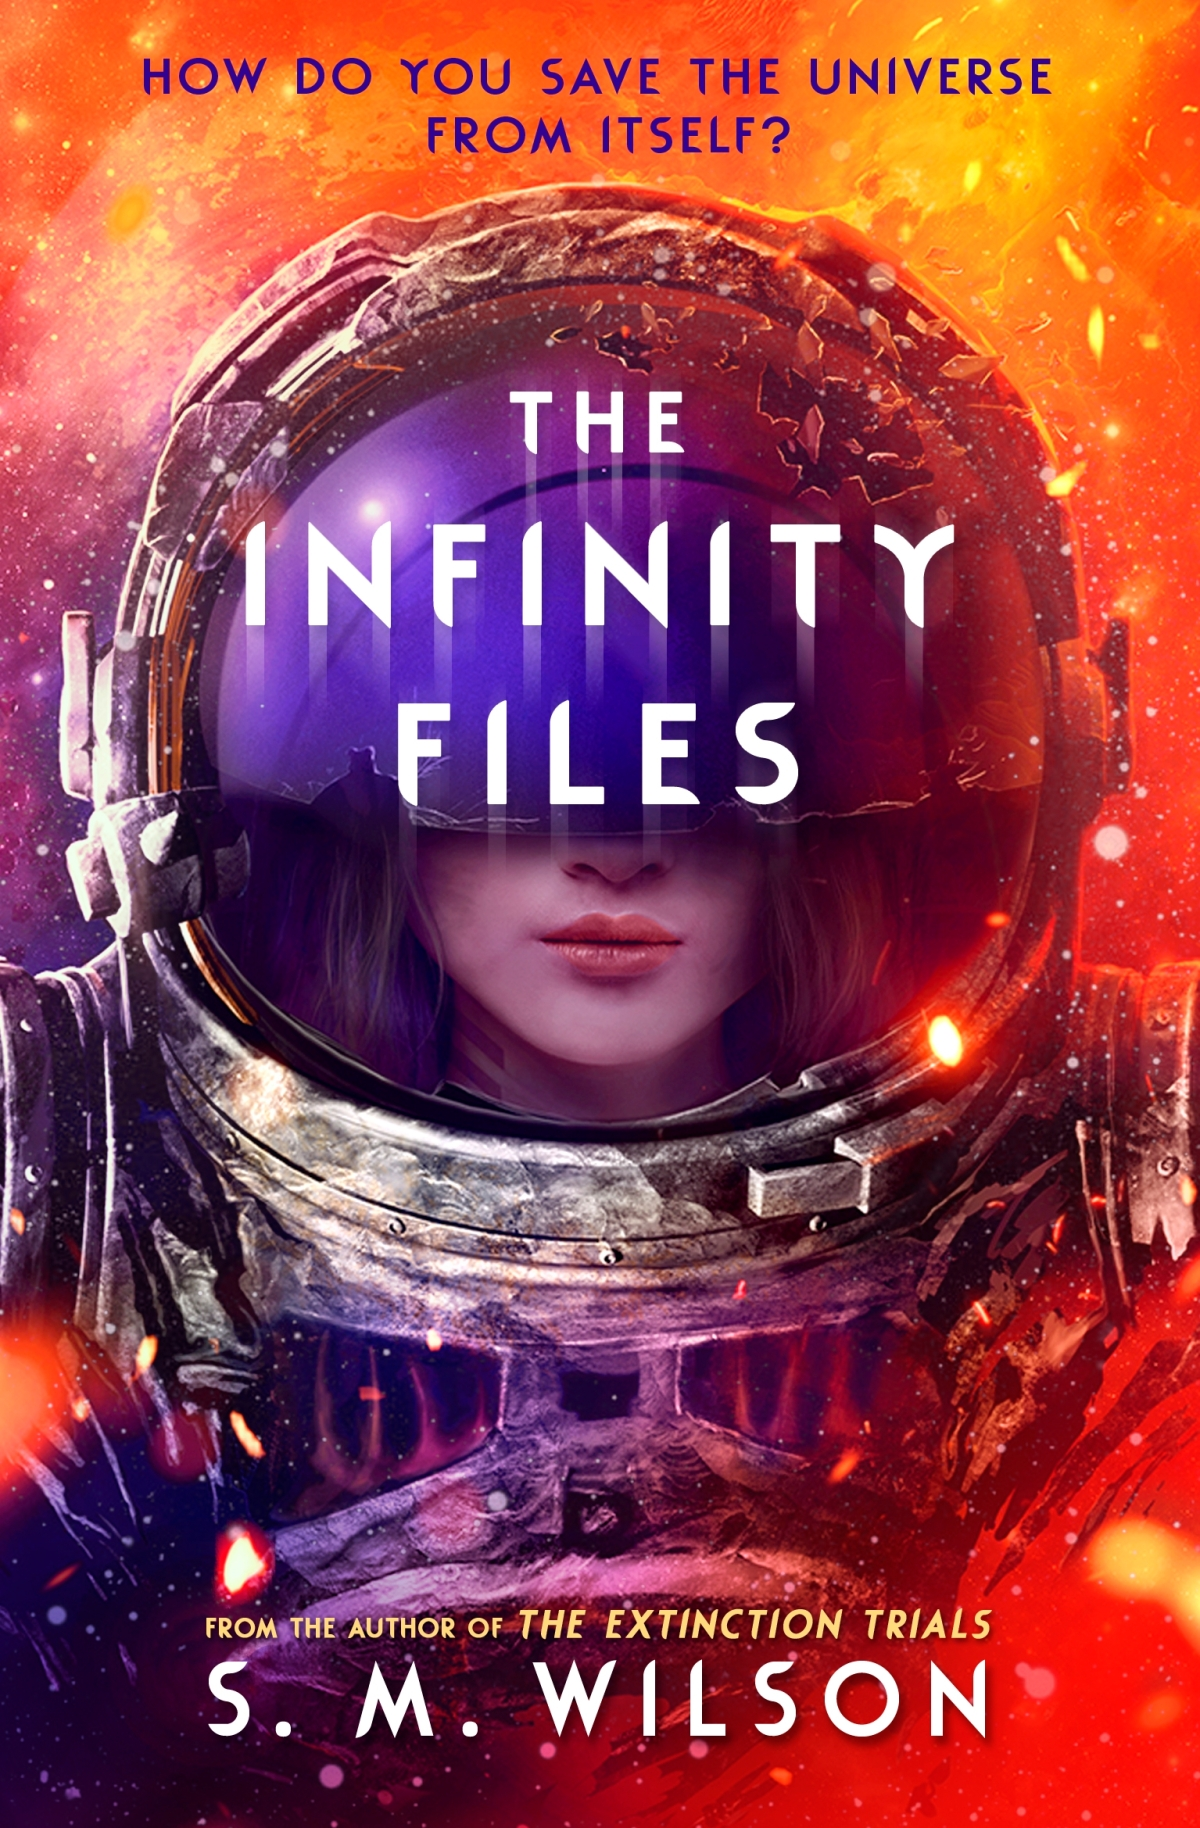 Infinity Files Blog Tour Q&A with S. M. Wilson